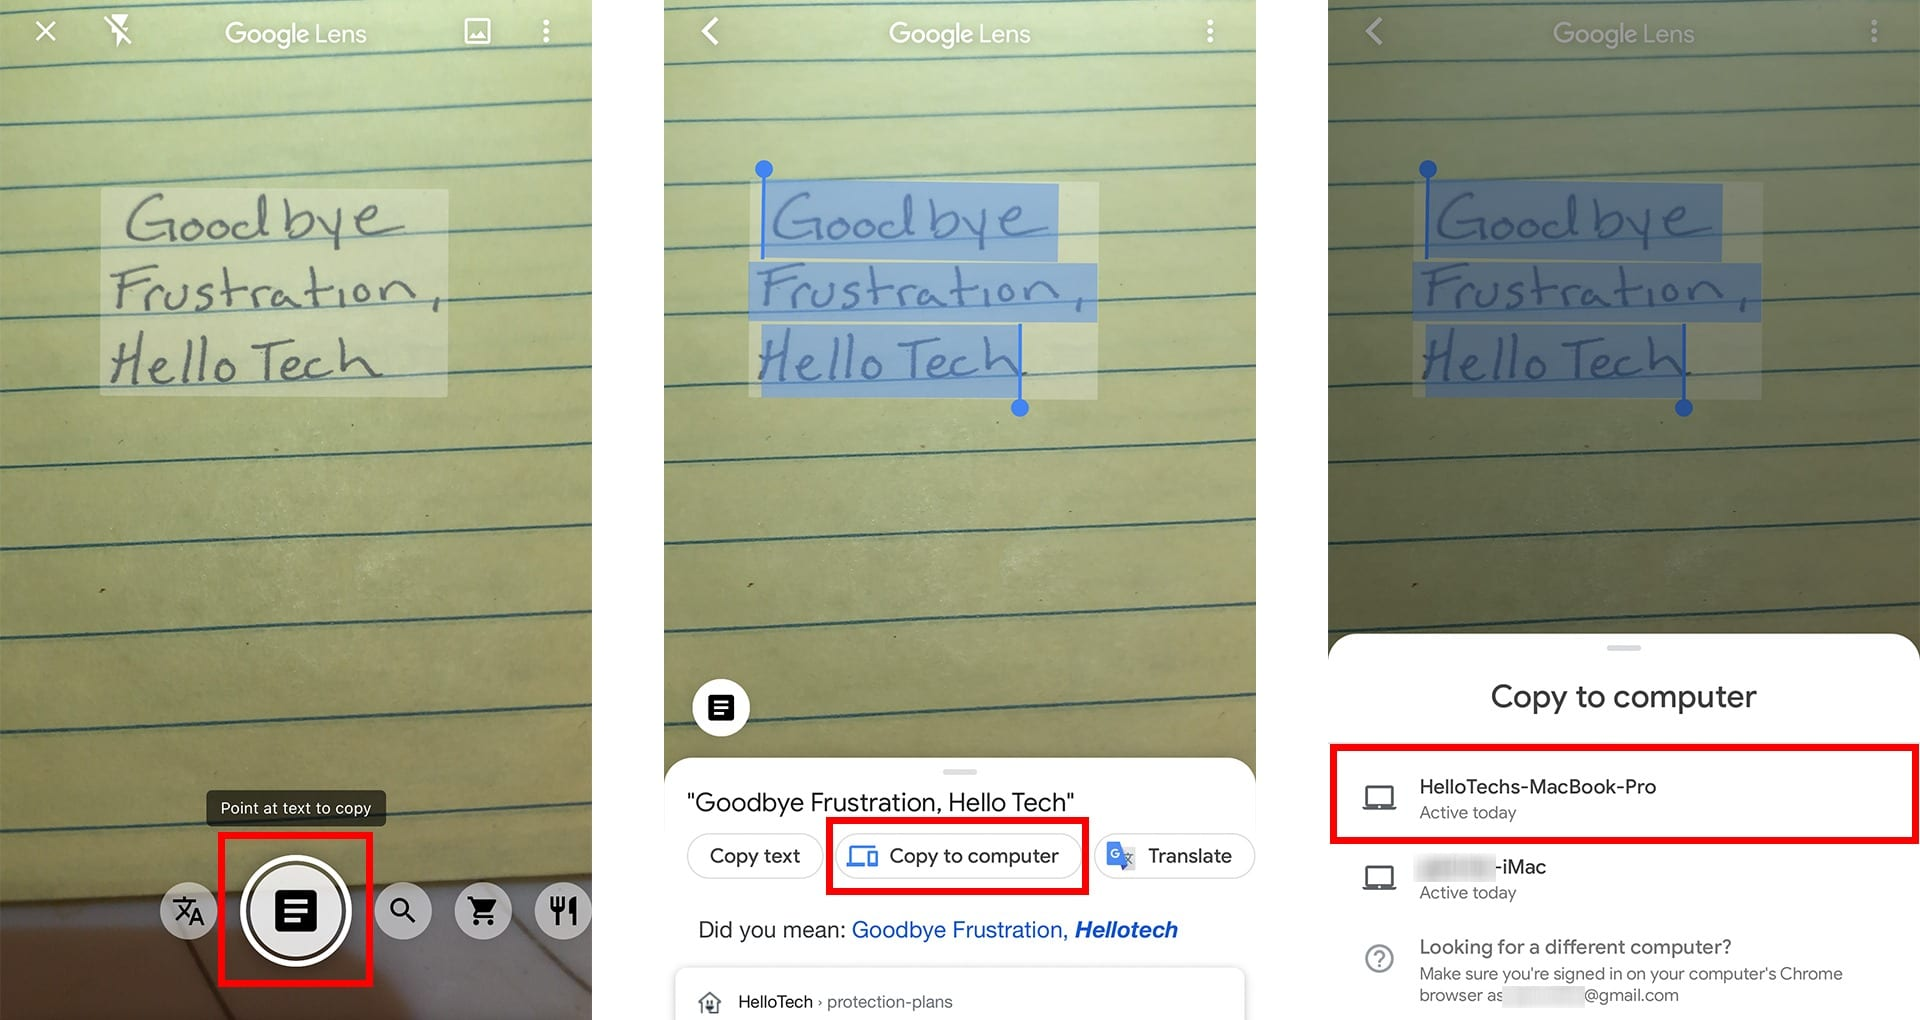 how to scan handwritten text with Google Lens